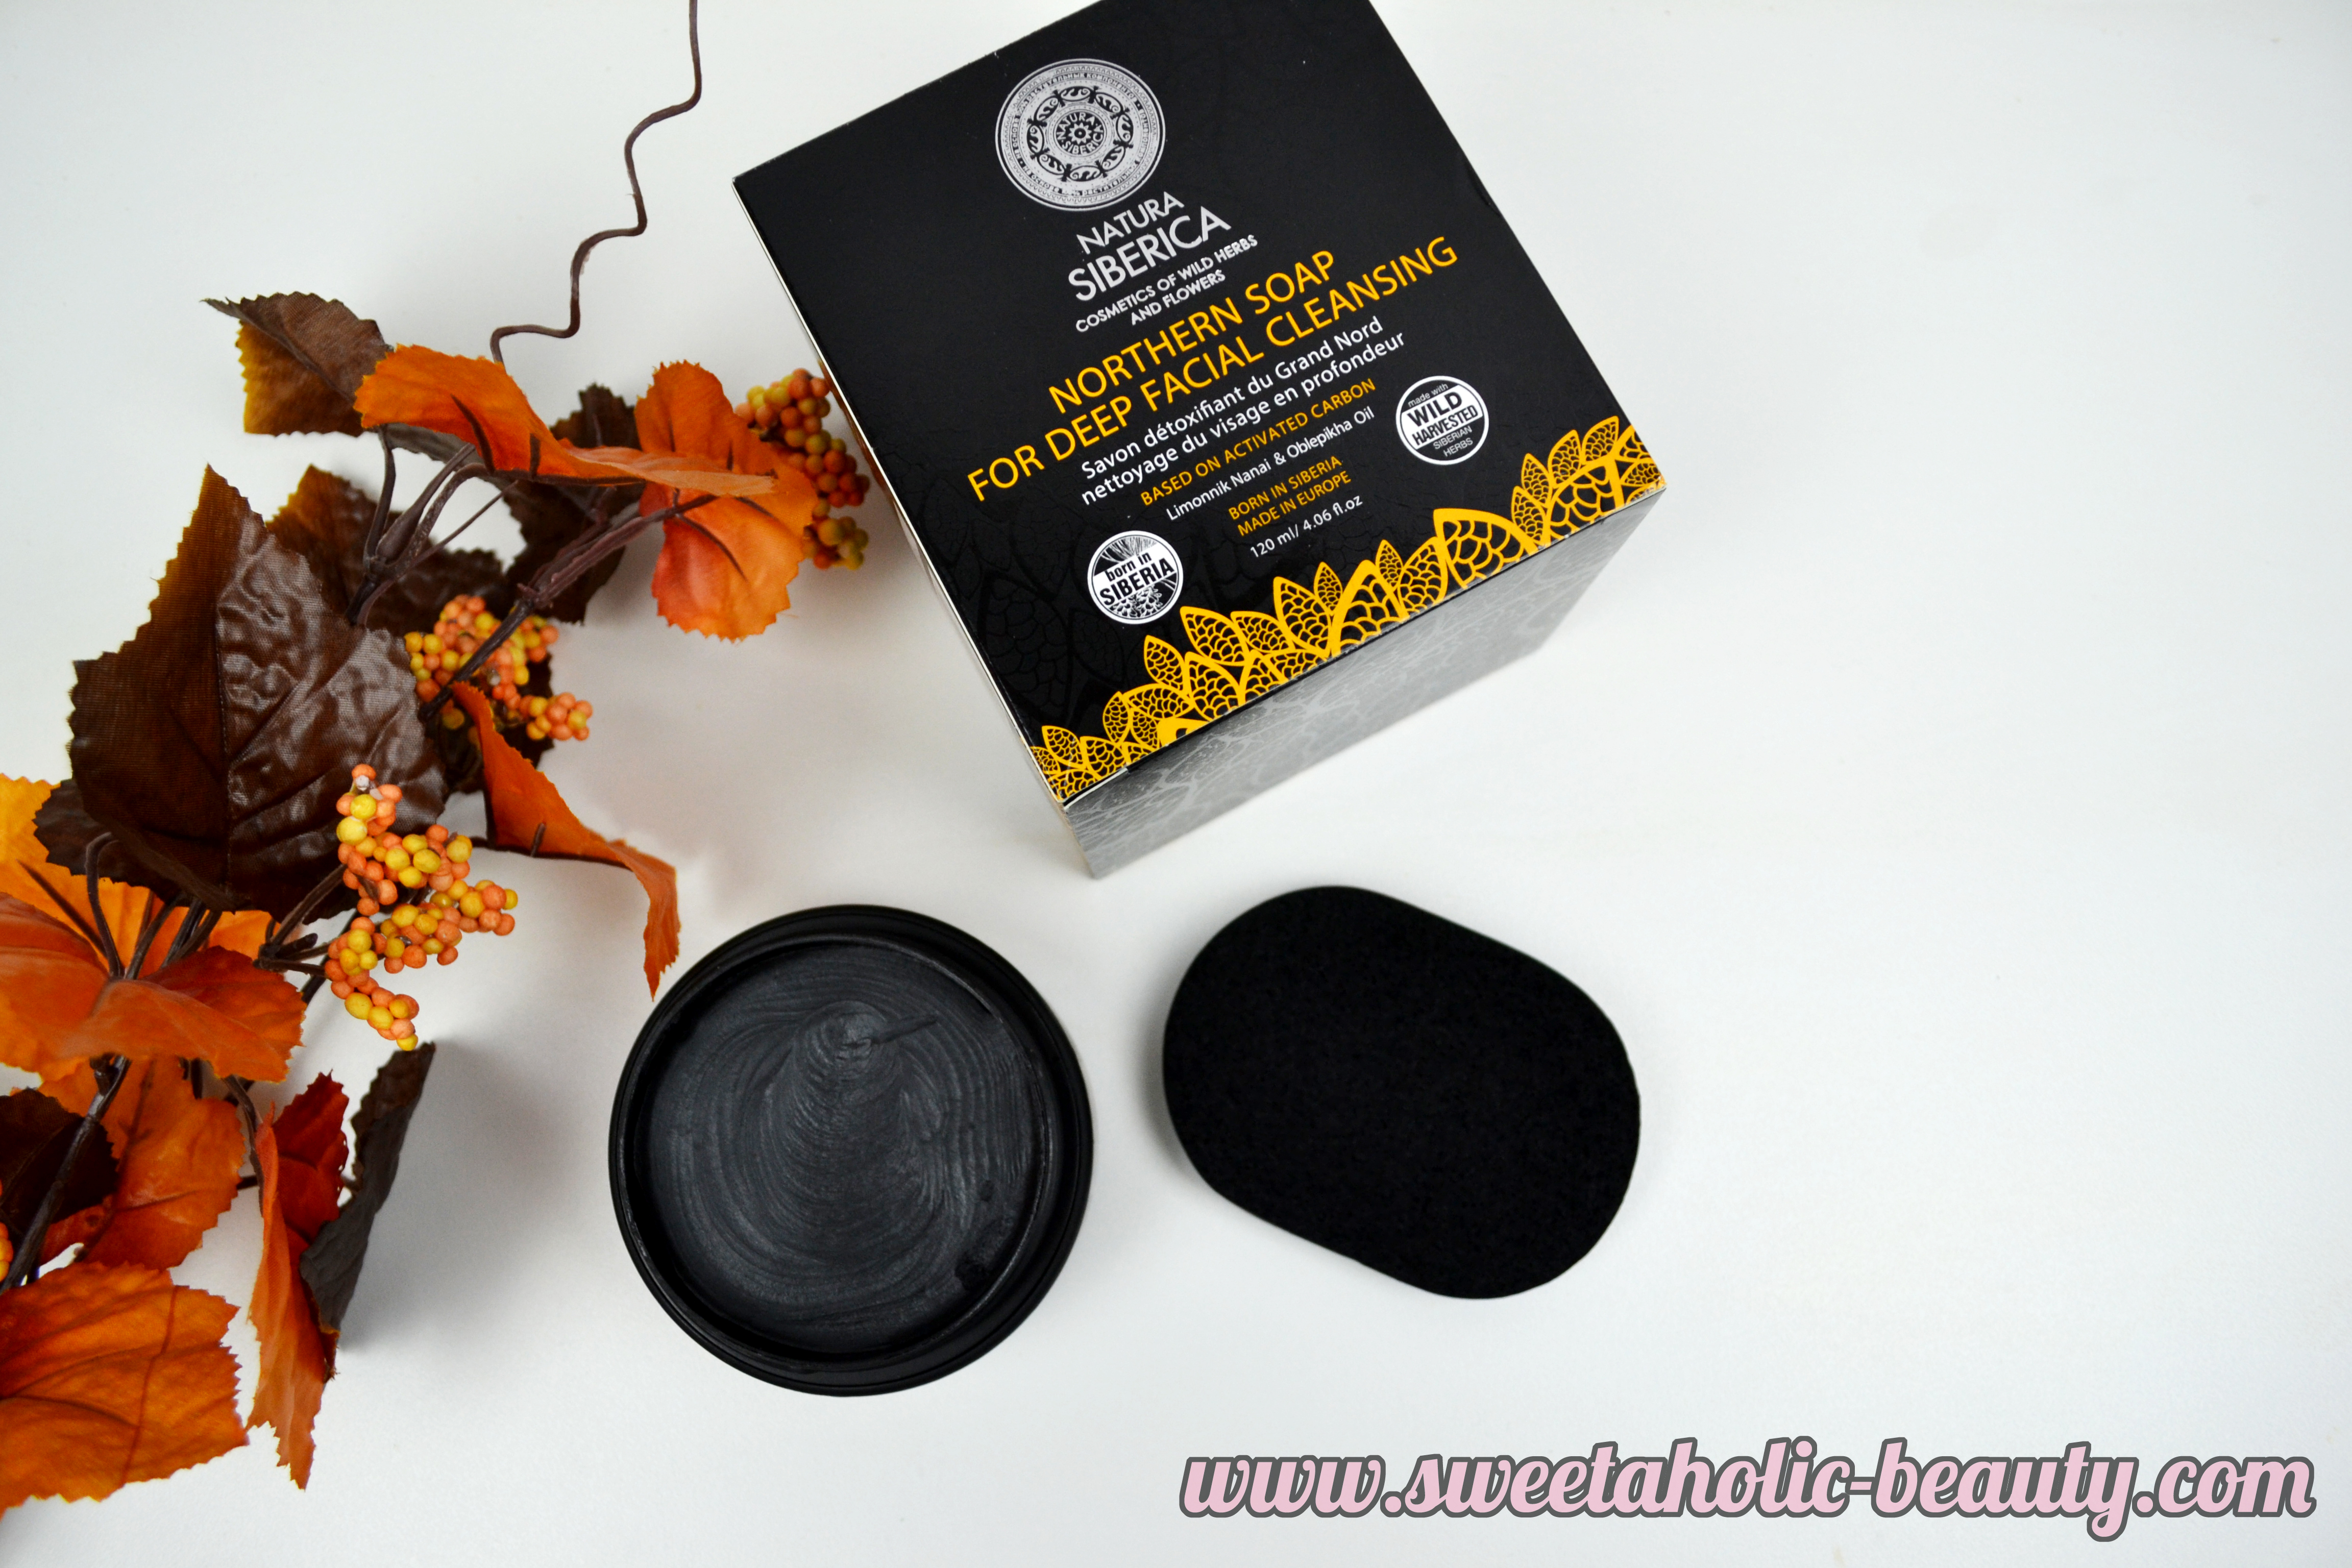 Natura Siberica Northern Soap Review - Sweetaholic Beauty